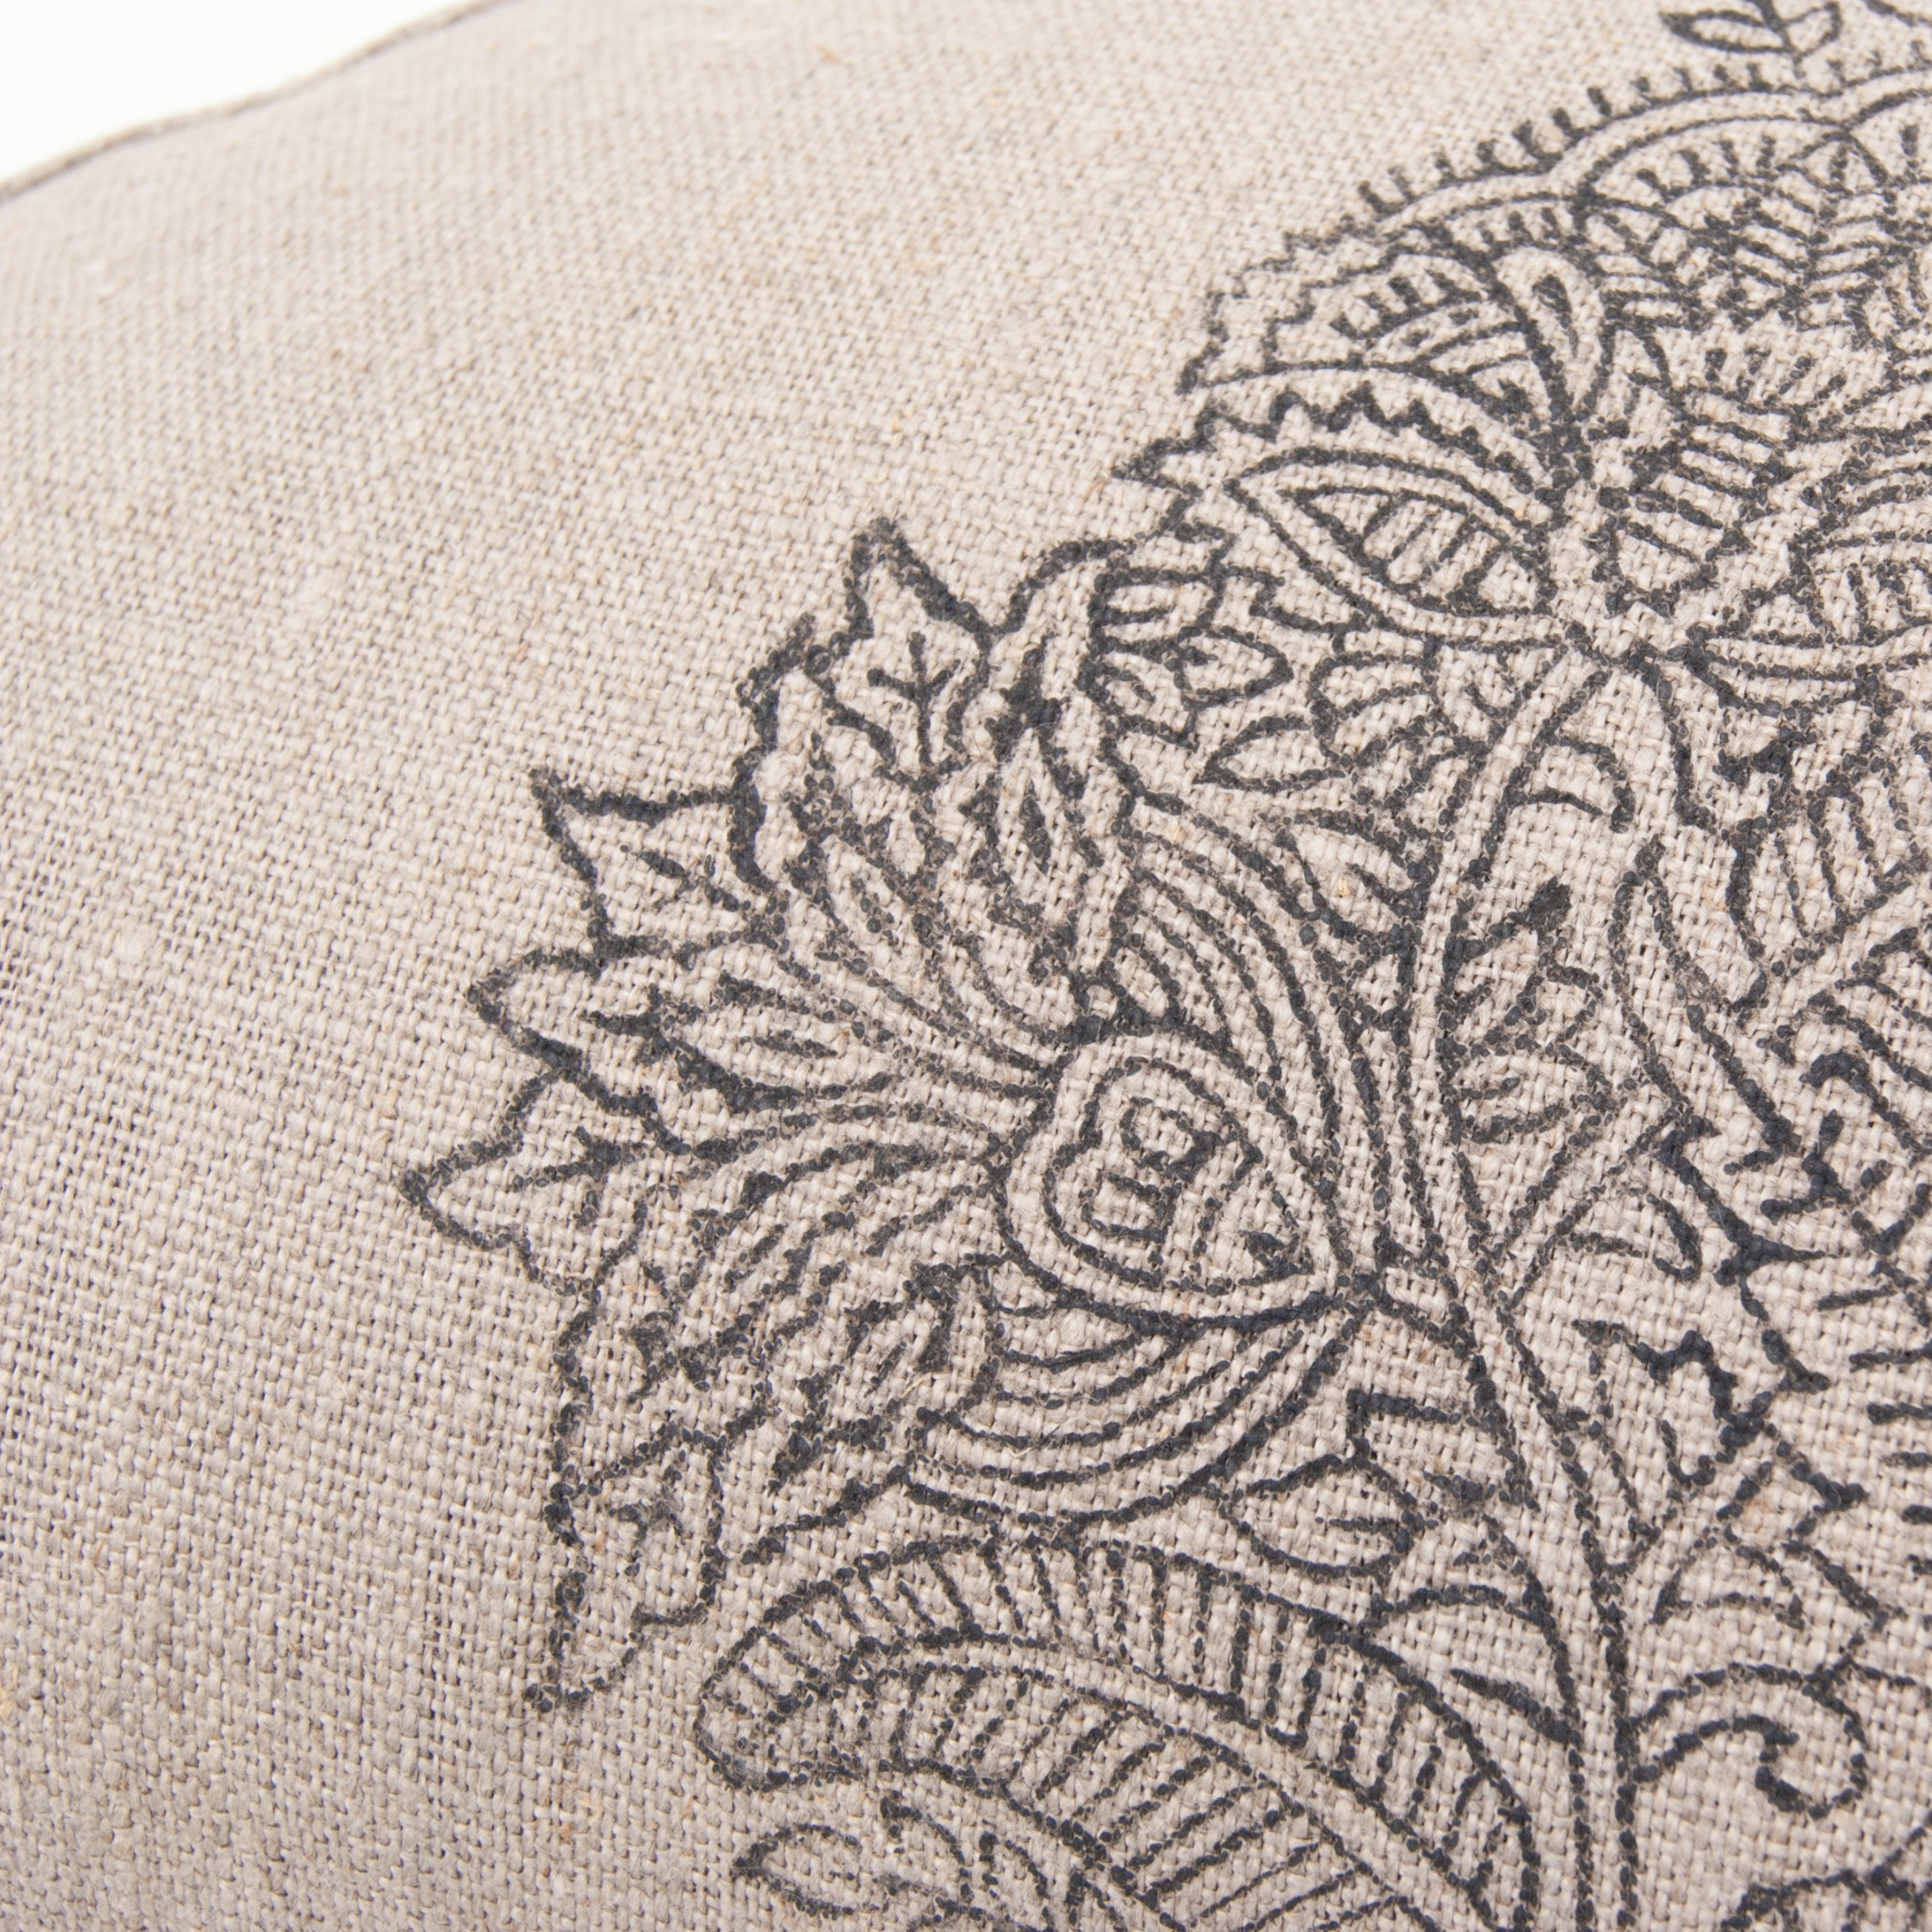 Stunning floral print on half moon meditation cushion by Pure Prana Label